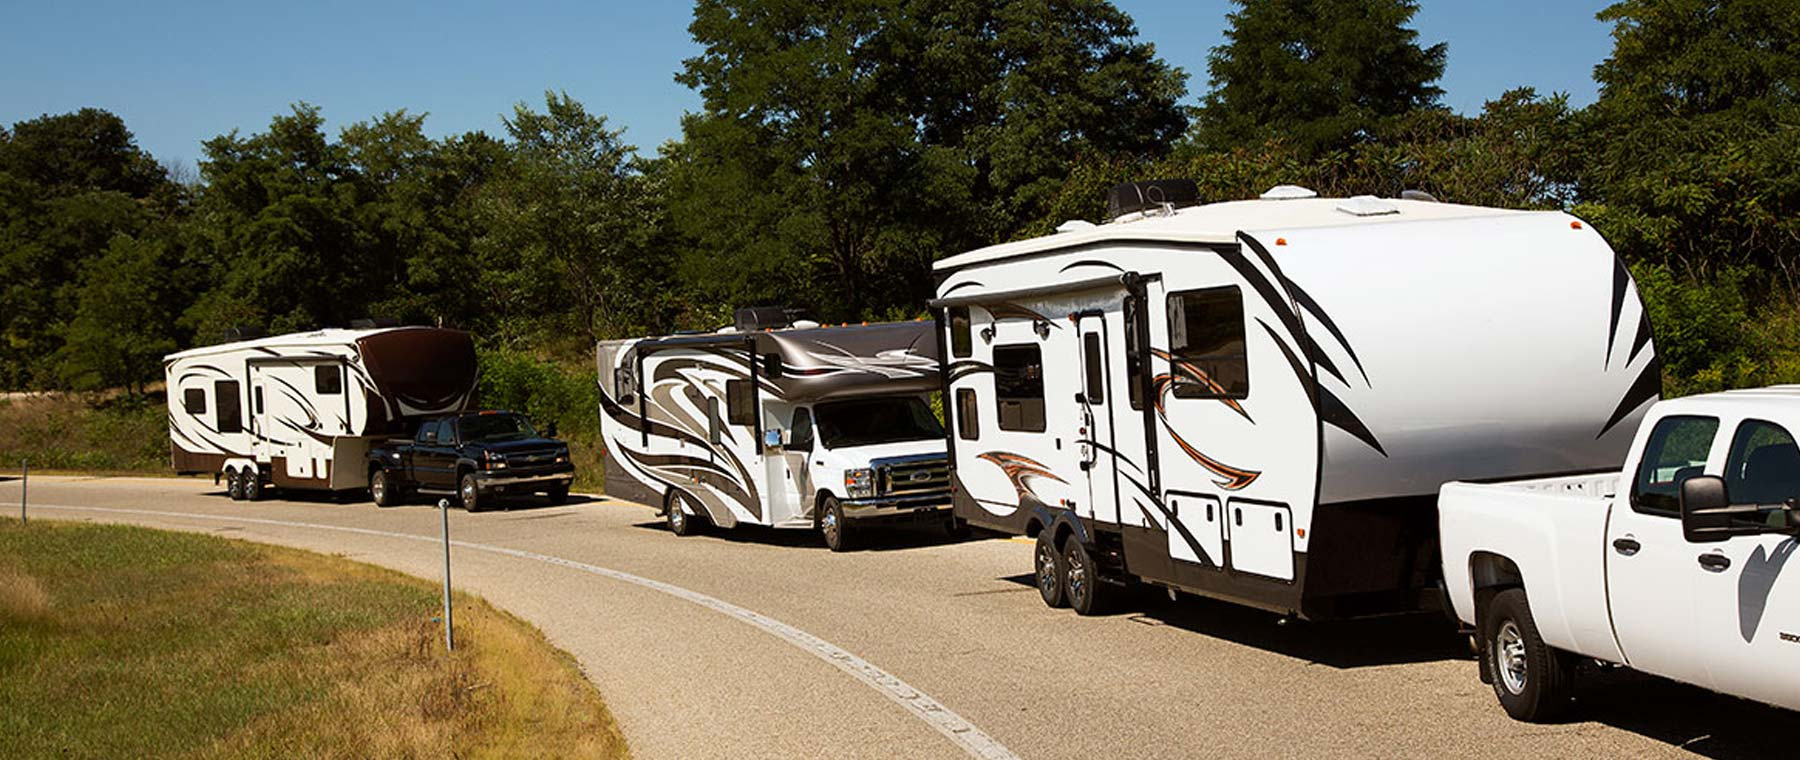 Rvs for sale from rv dealers gorving canada go rving for Motor homes to rent